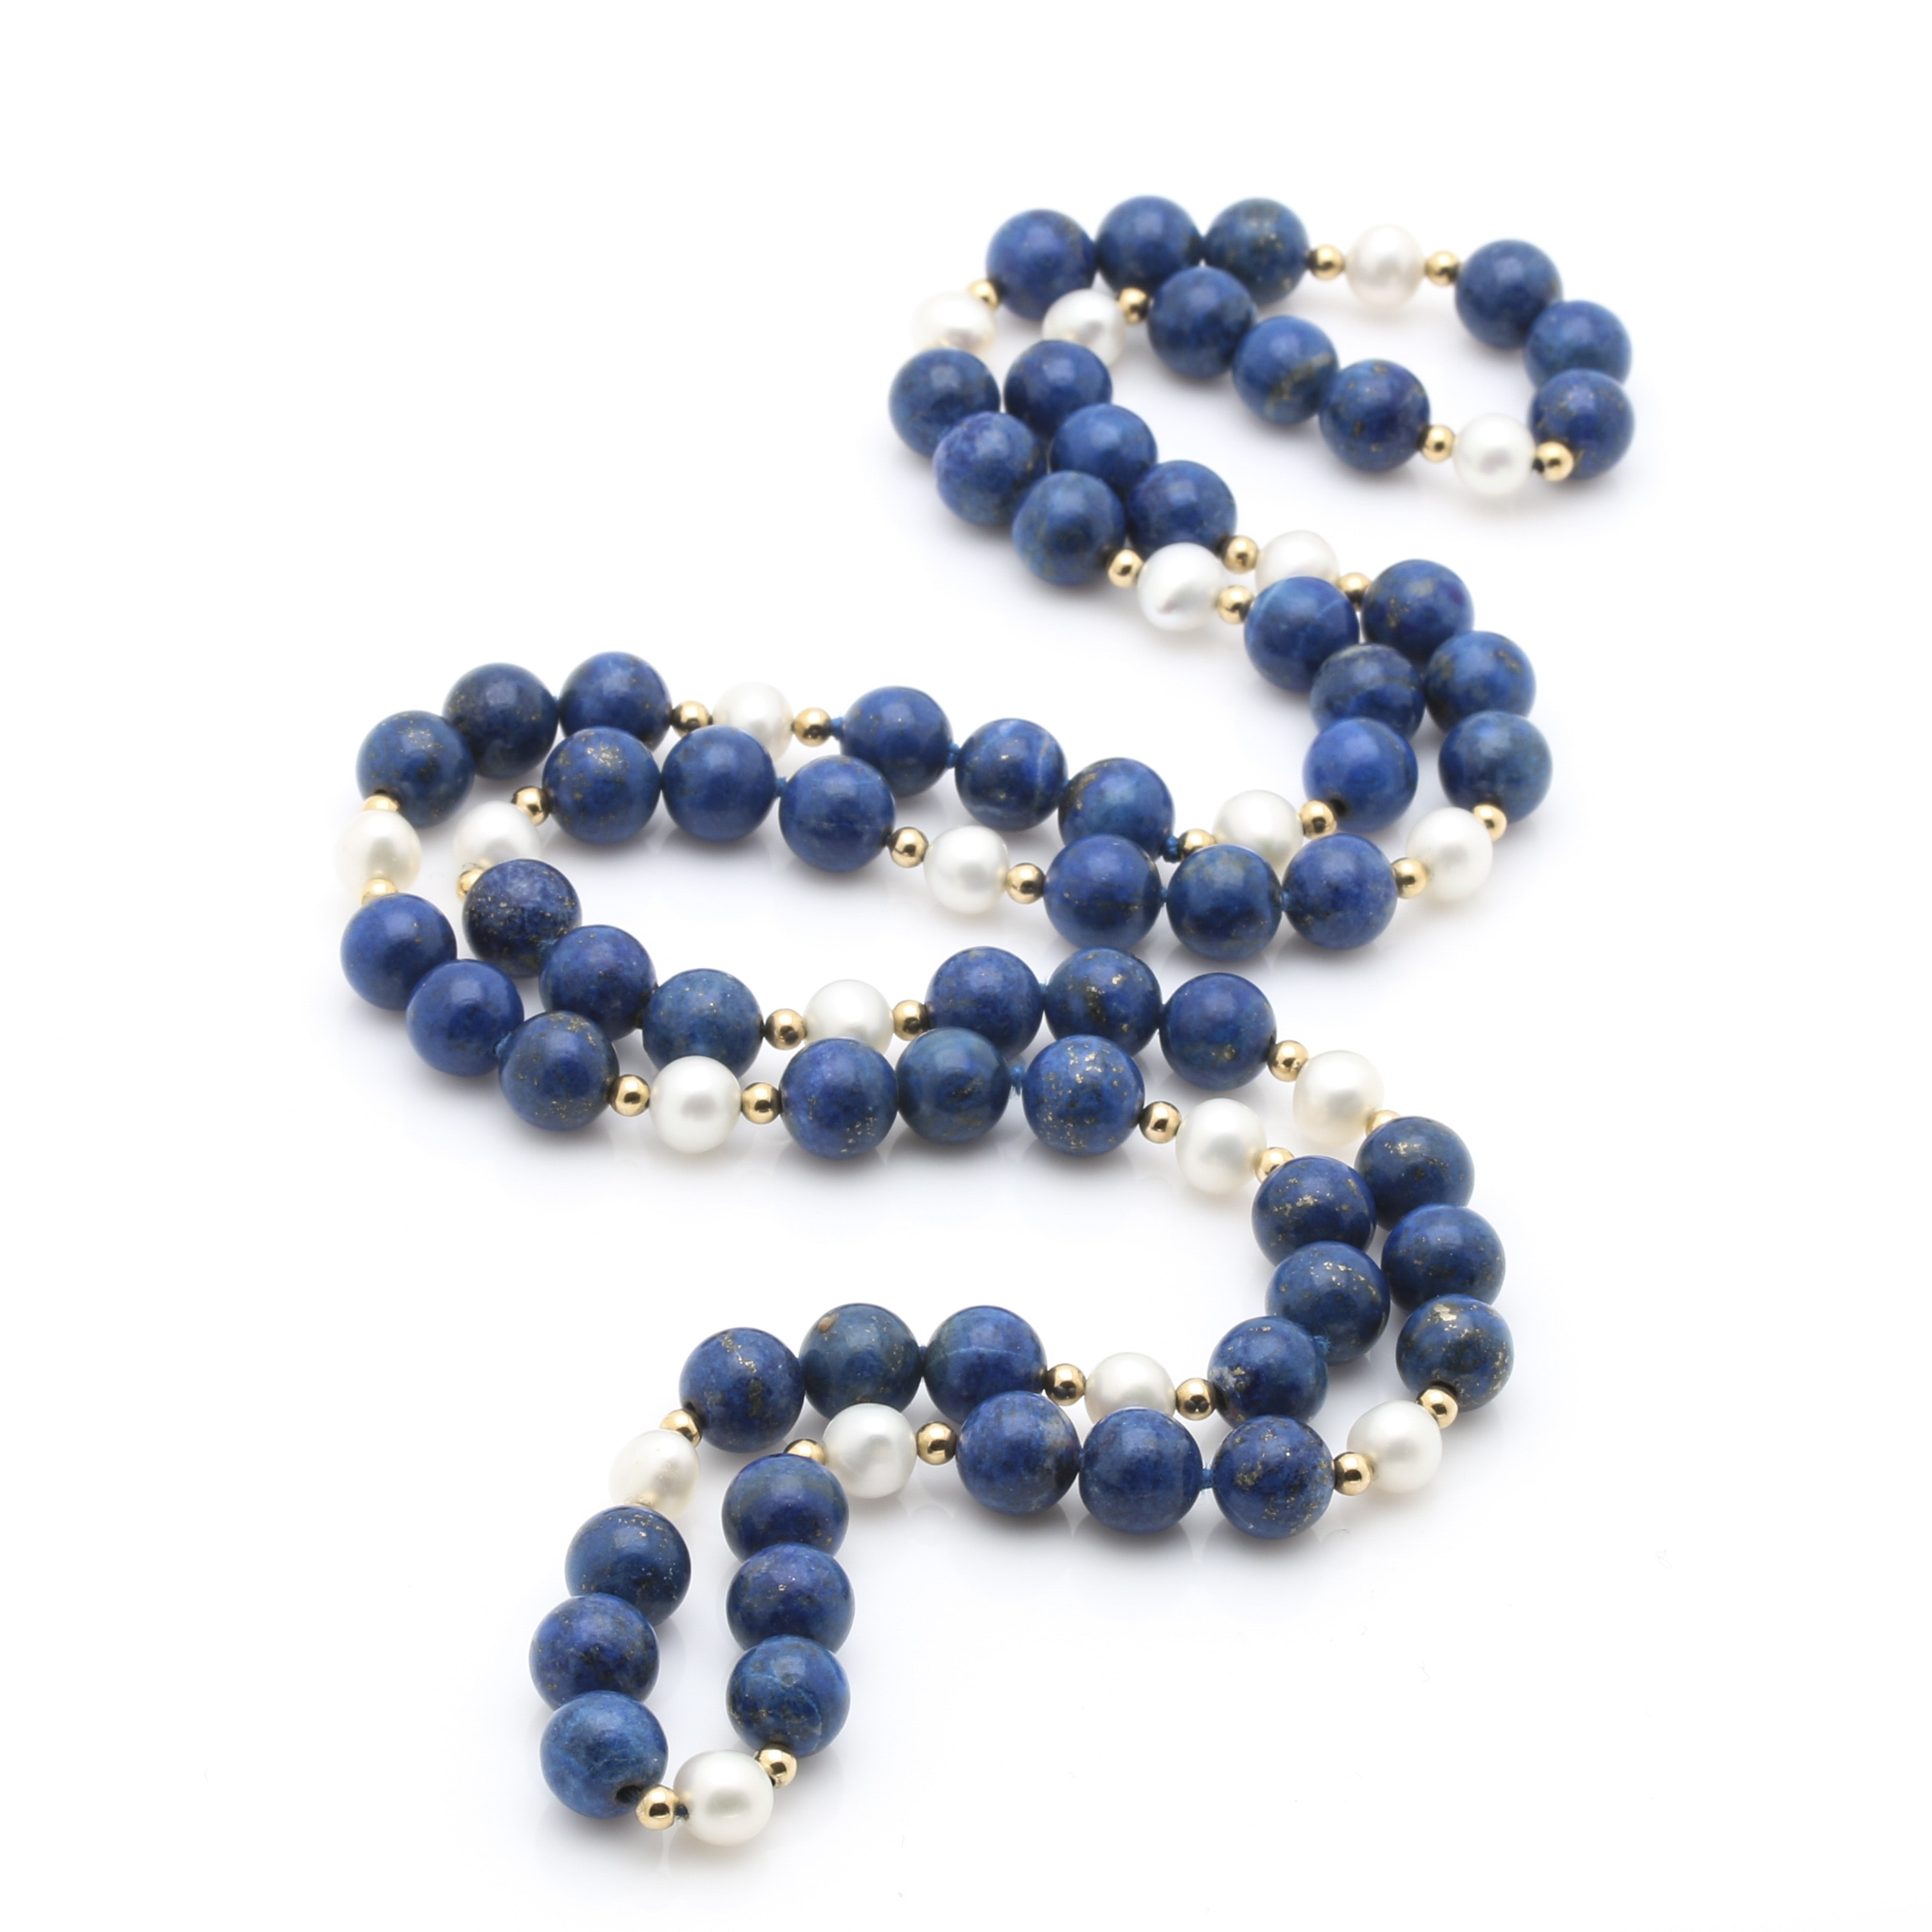 Lapis Lazuli and Freshwater Cultured Pearl Necklace with 14K Yellow Gold Beads